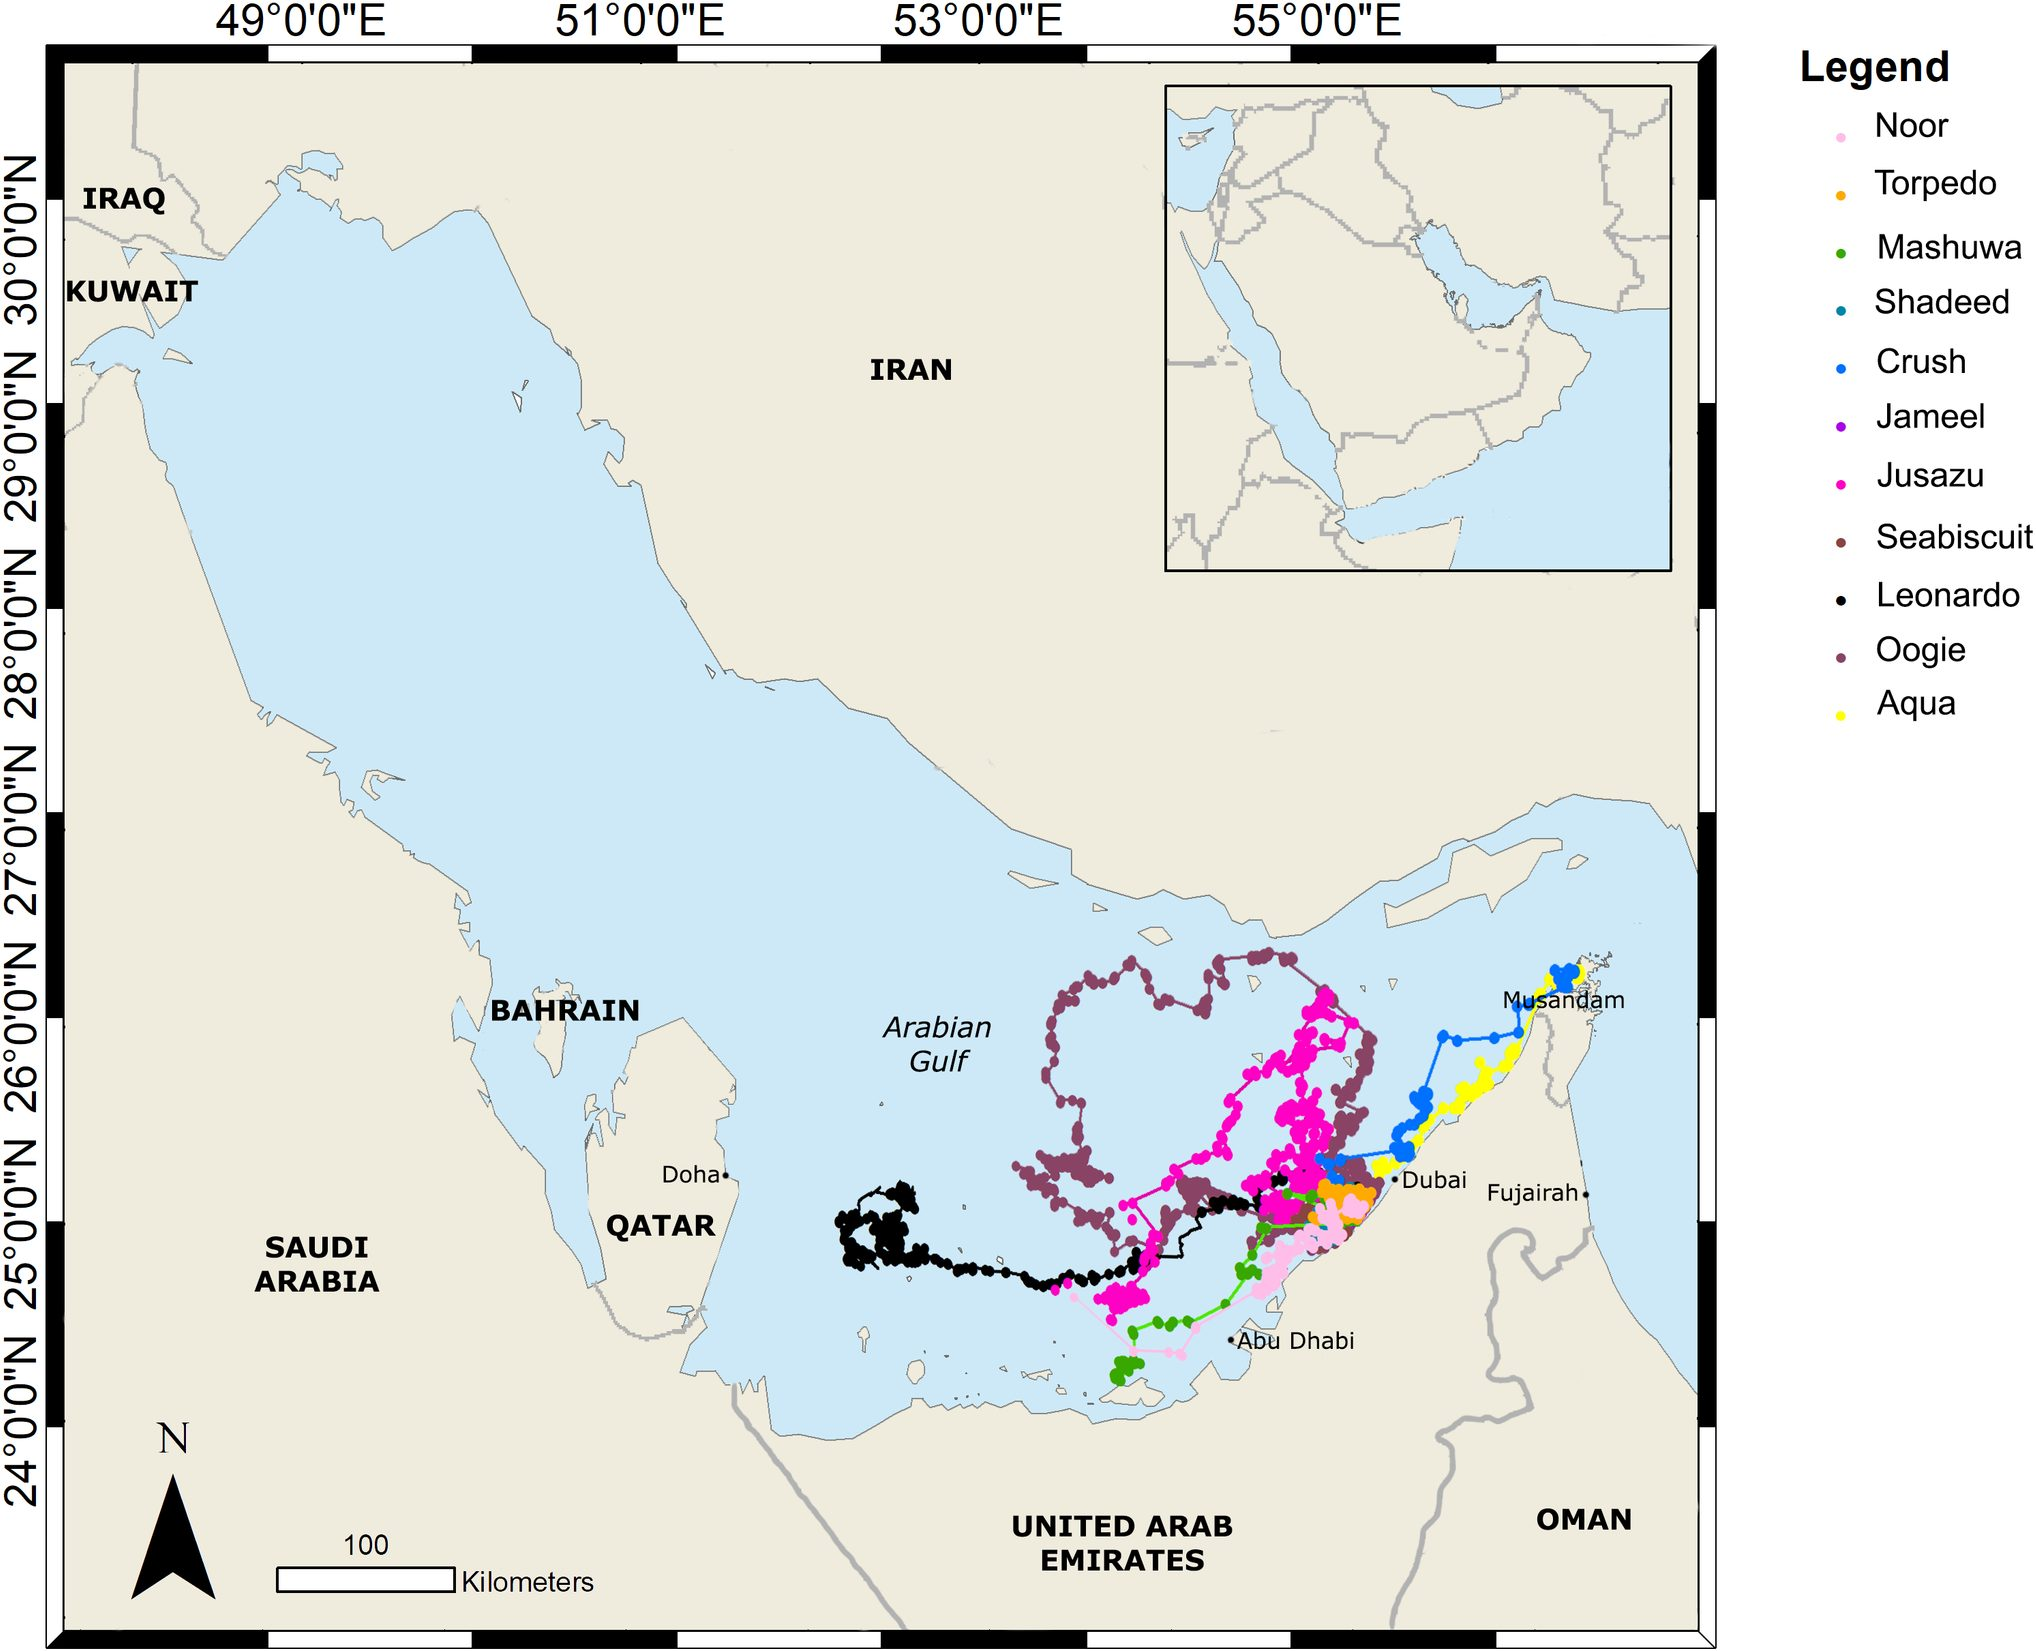 Horizontal movements of eleven rehabilitated hawksbill (left) turtles satellite tagged and released in the United Arab Emirates during this study; the loggerheads move at a larger range than the hawksbill (from [Robinson et al., 2021], credit Dubai Turtle Rehabilitation Project)